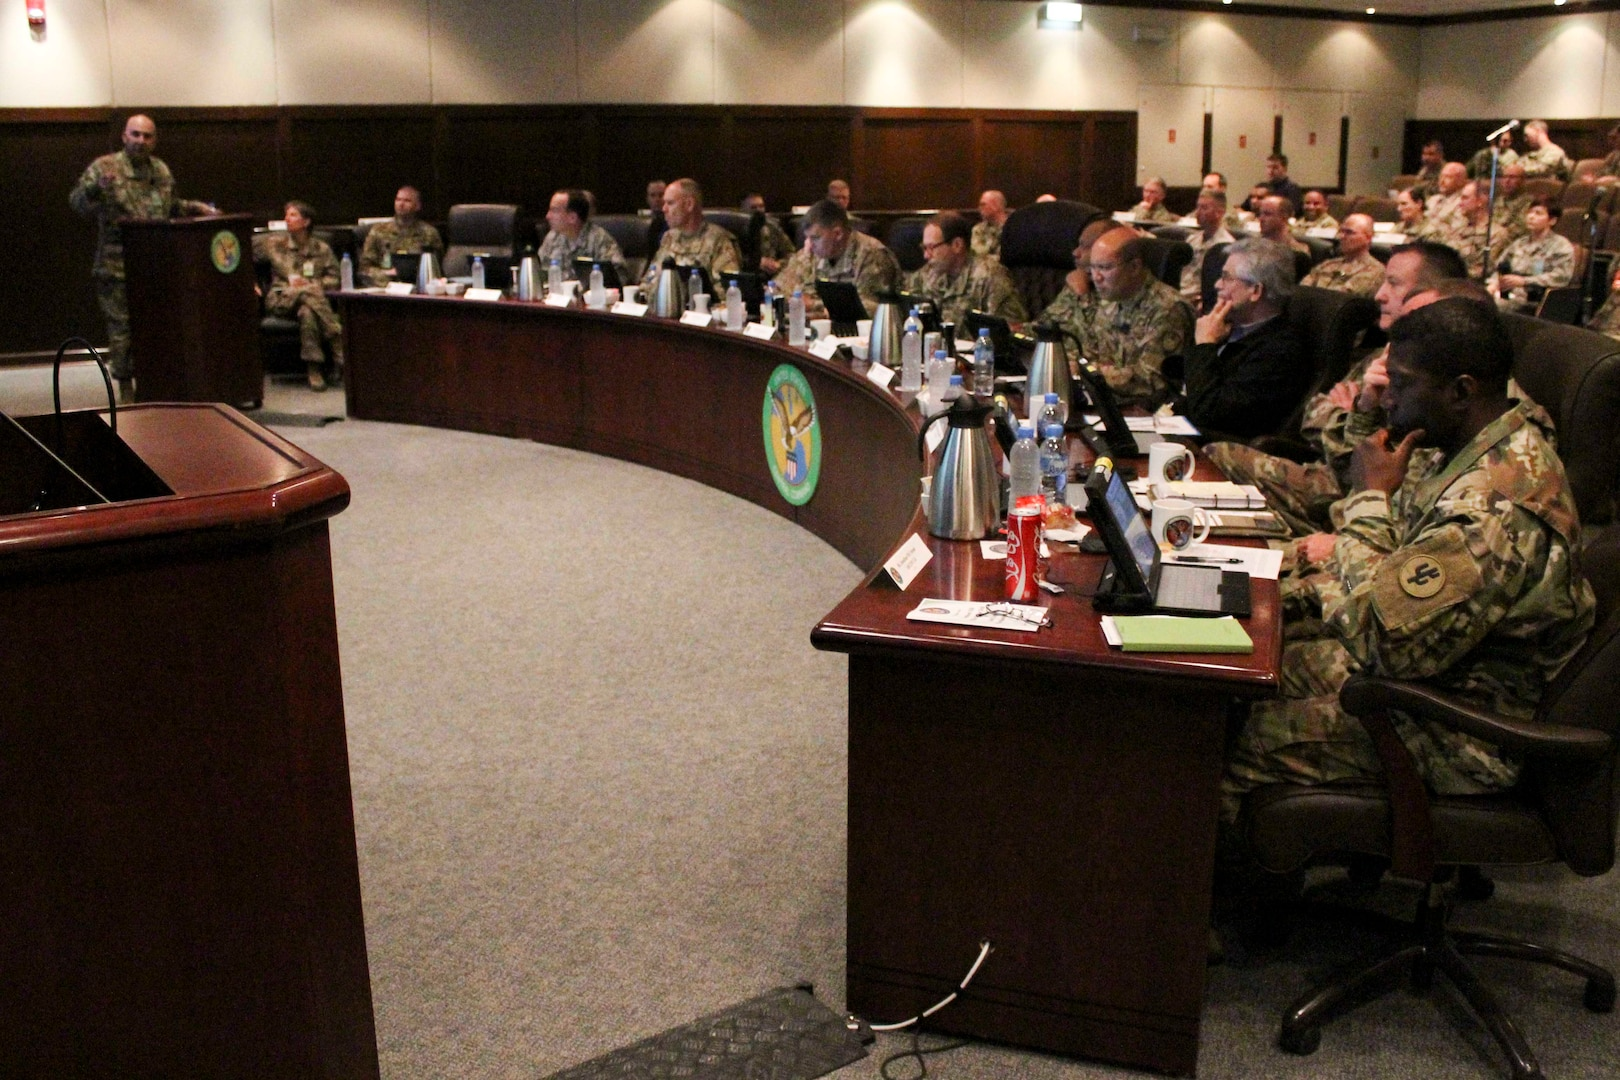 U.S. military logistics leaders and experts from across the Department of Defense discuss long-term logistics planning during the Joint Logistics Coordination Board at the U.S. Central Command forward headquarters at Al Udeid Air Base, Qatar, April 6, 2017. The board was part of a week of planning conferences which included two separate sessions aimed at ensuring the joint logistics enterprise aligns efforts across the CENTCOM area of responsibility to maintain an effective readiness for both current and future operations. (U.S. Air Force photo by Staff Sgt. R. Alex Durbin)